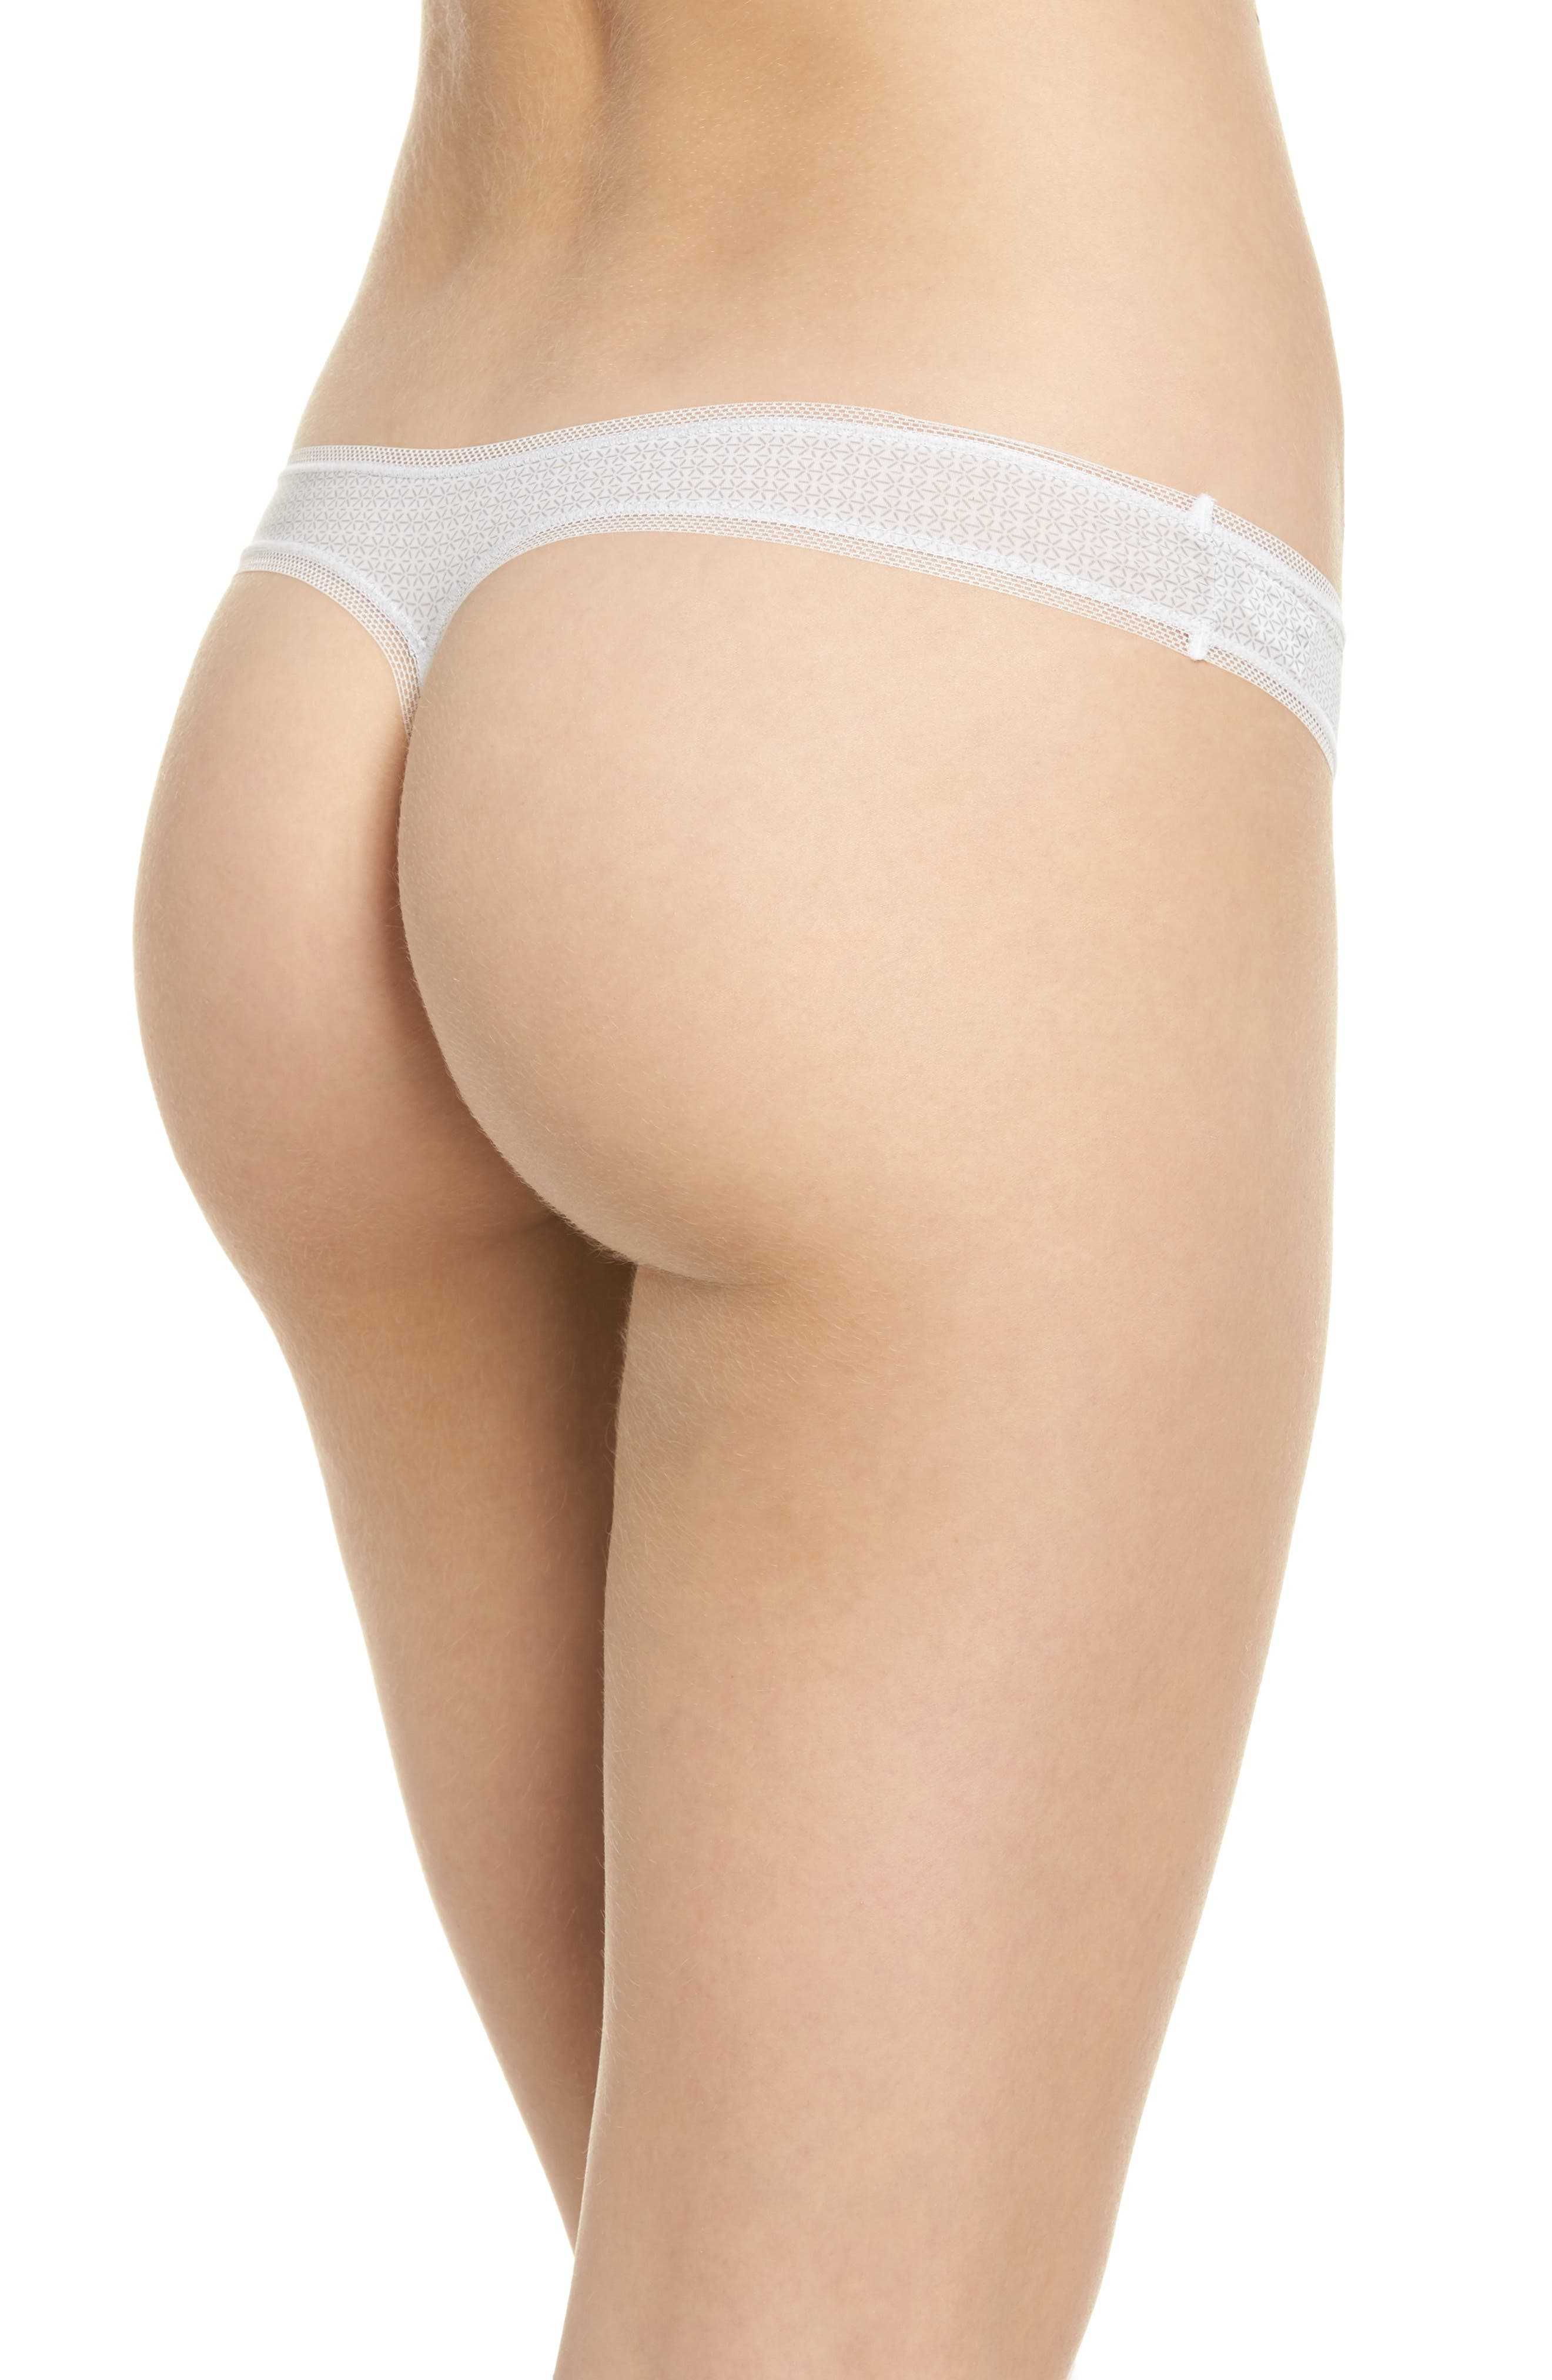 Alternate Image 2  - DKNY Low Rise Thong (3 for $33)